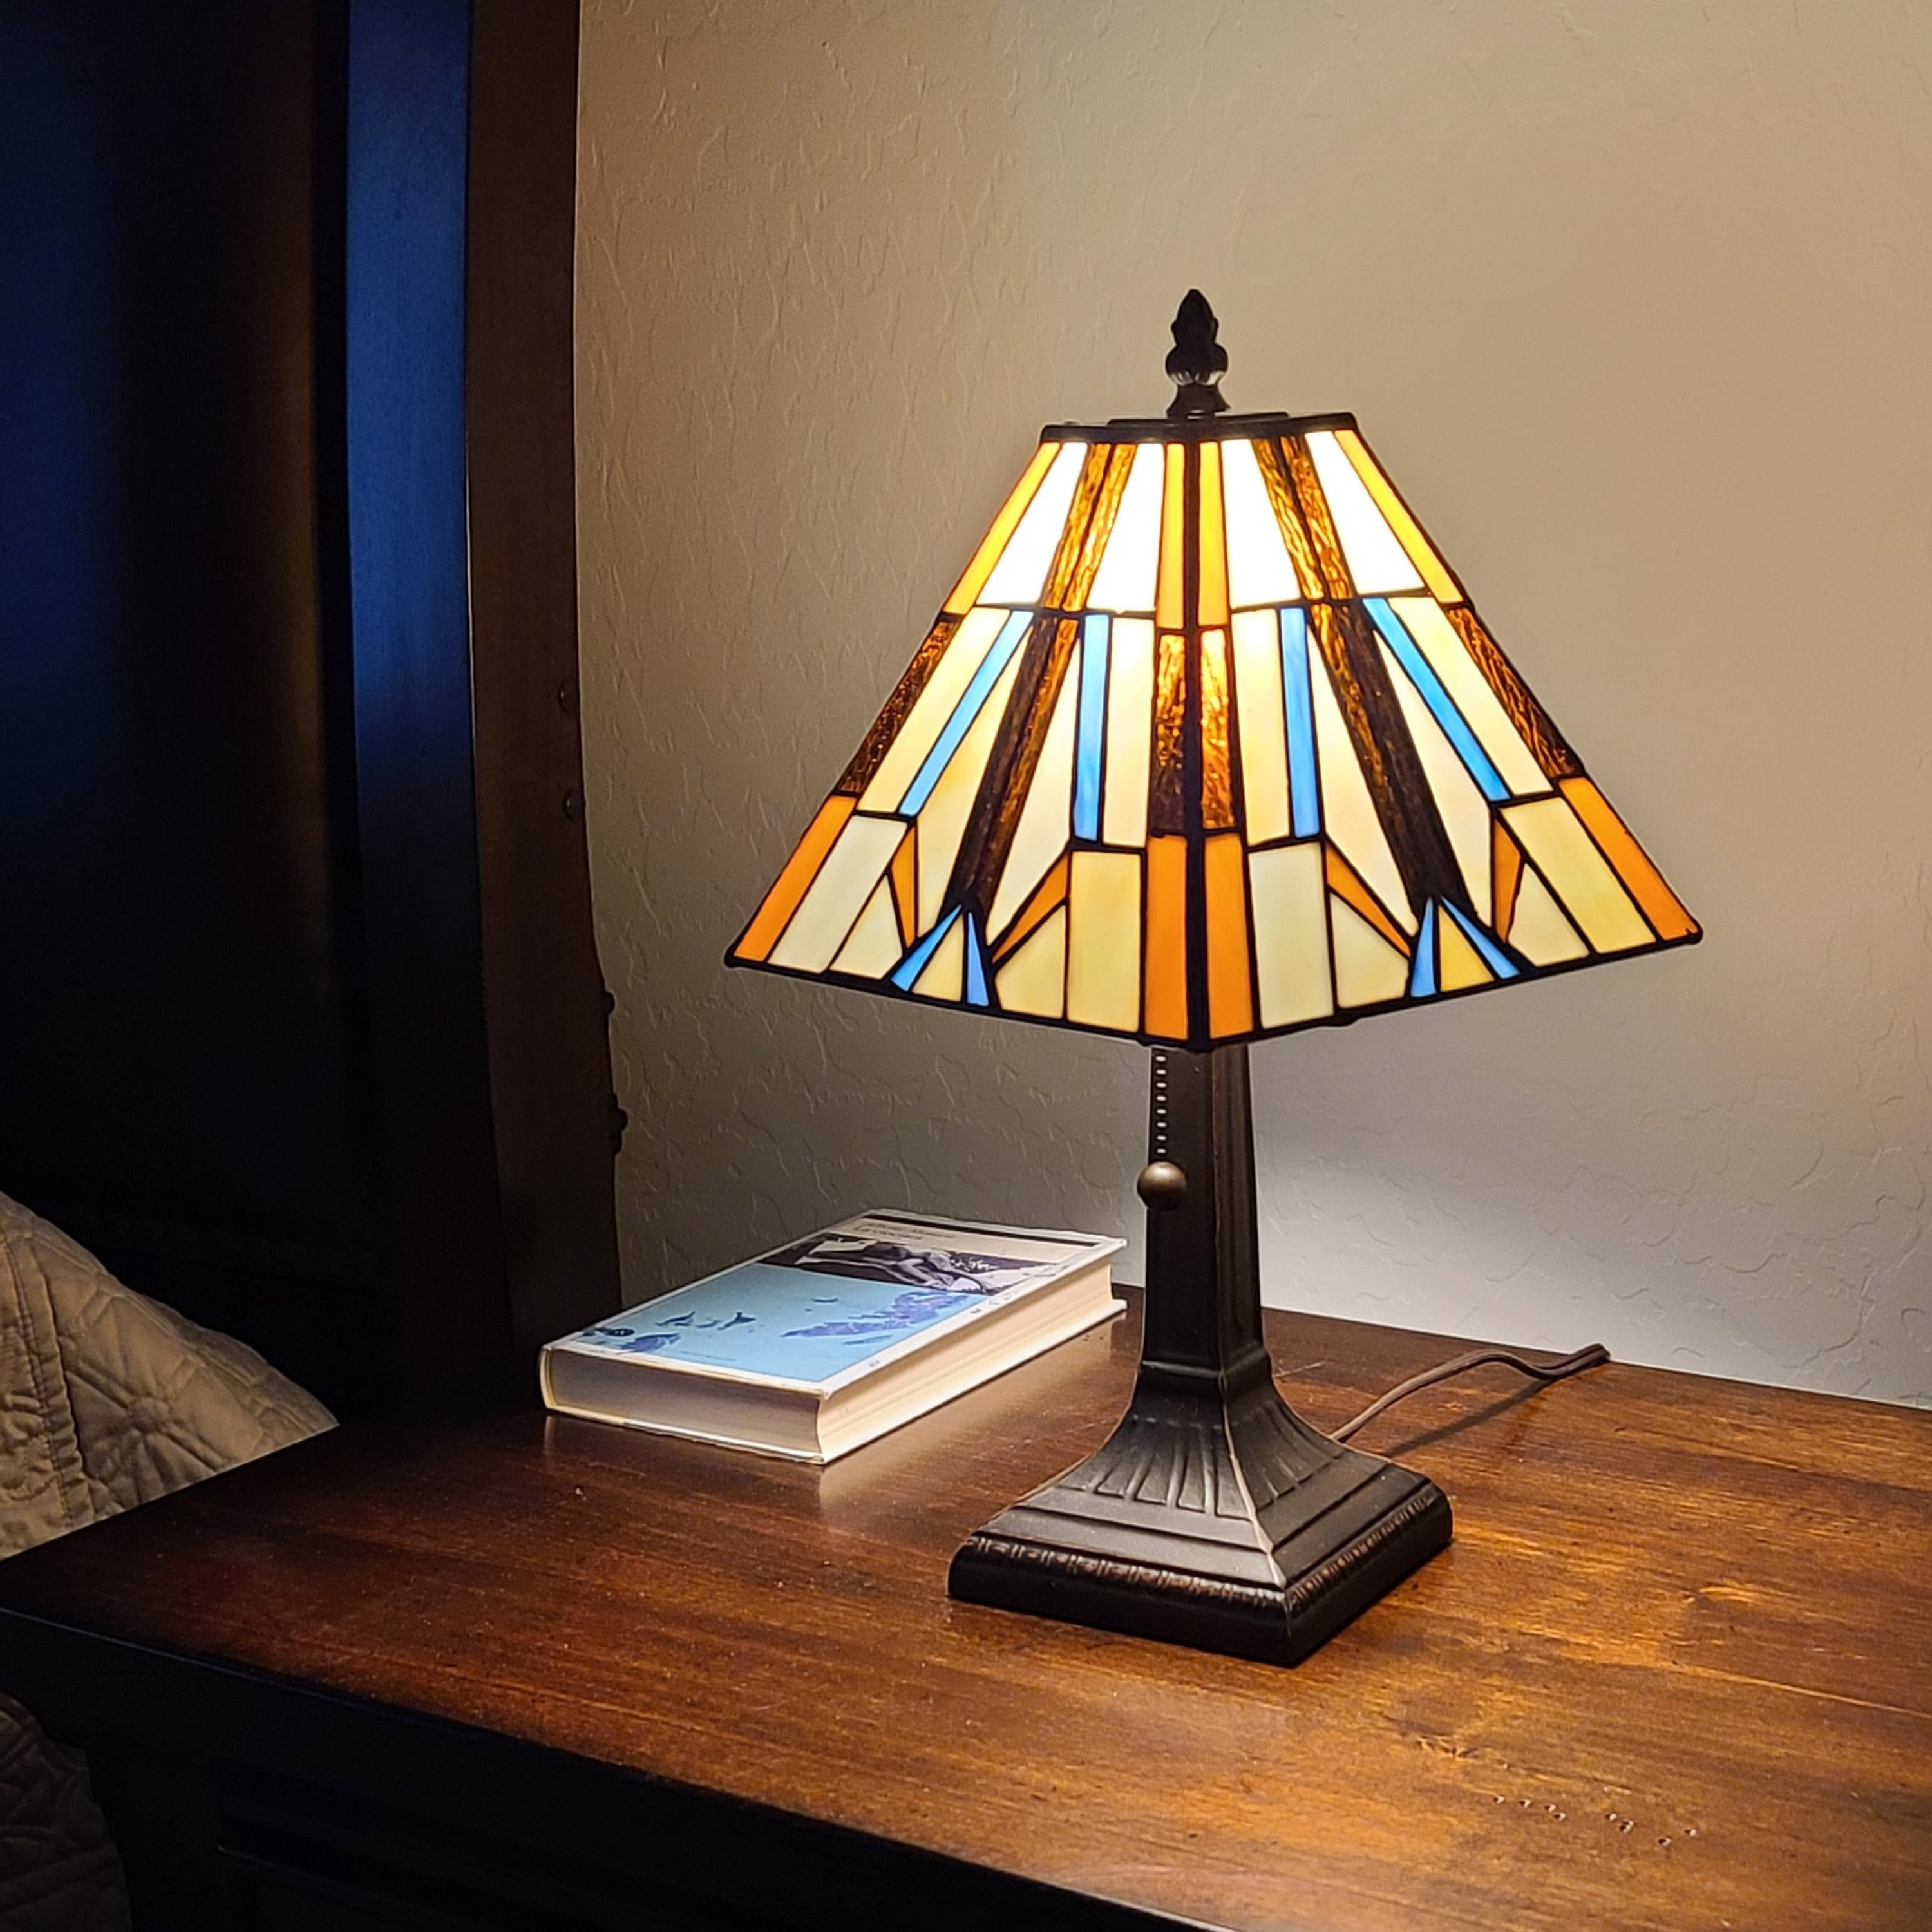 Tiffany Style Mini Accent Lamp Mission Bedside Nightstand Handmade Pull Chain 15 Tall 8 Wide Gift Am100tl08b Amora Lighting Overstock 28416056